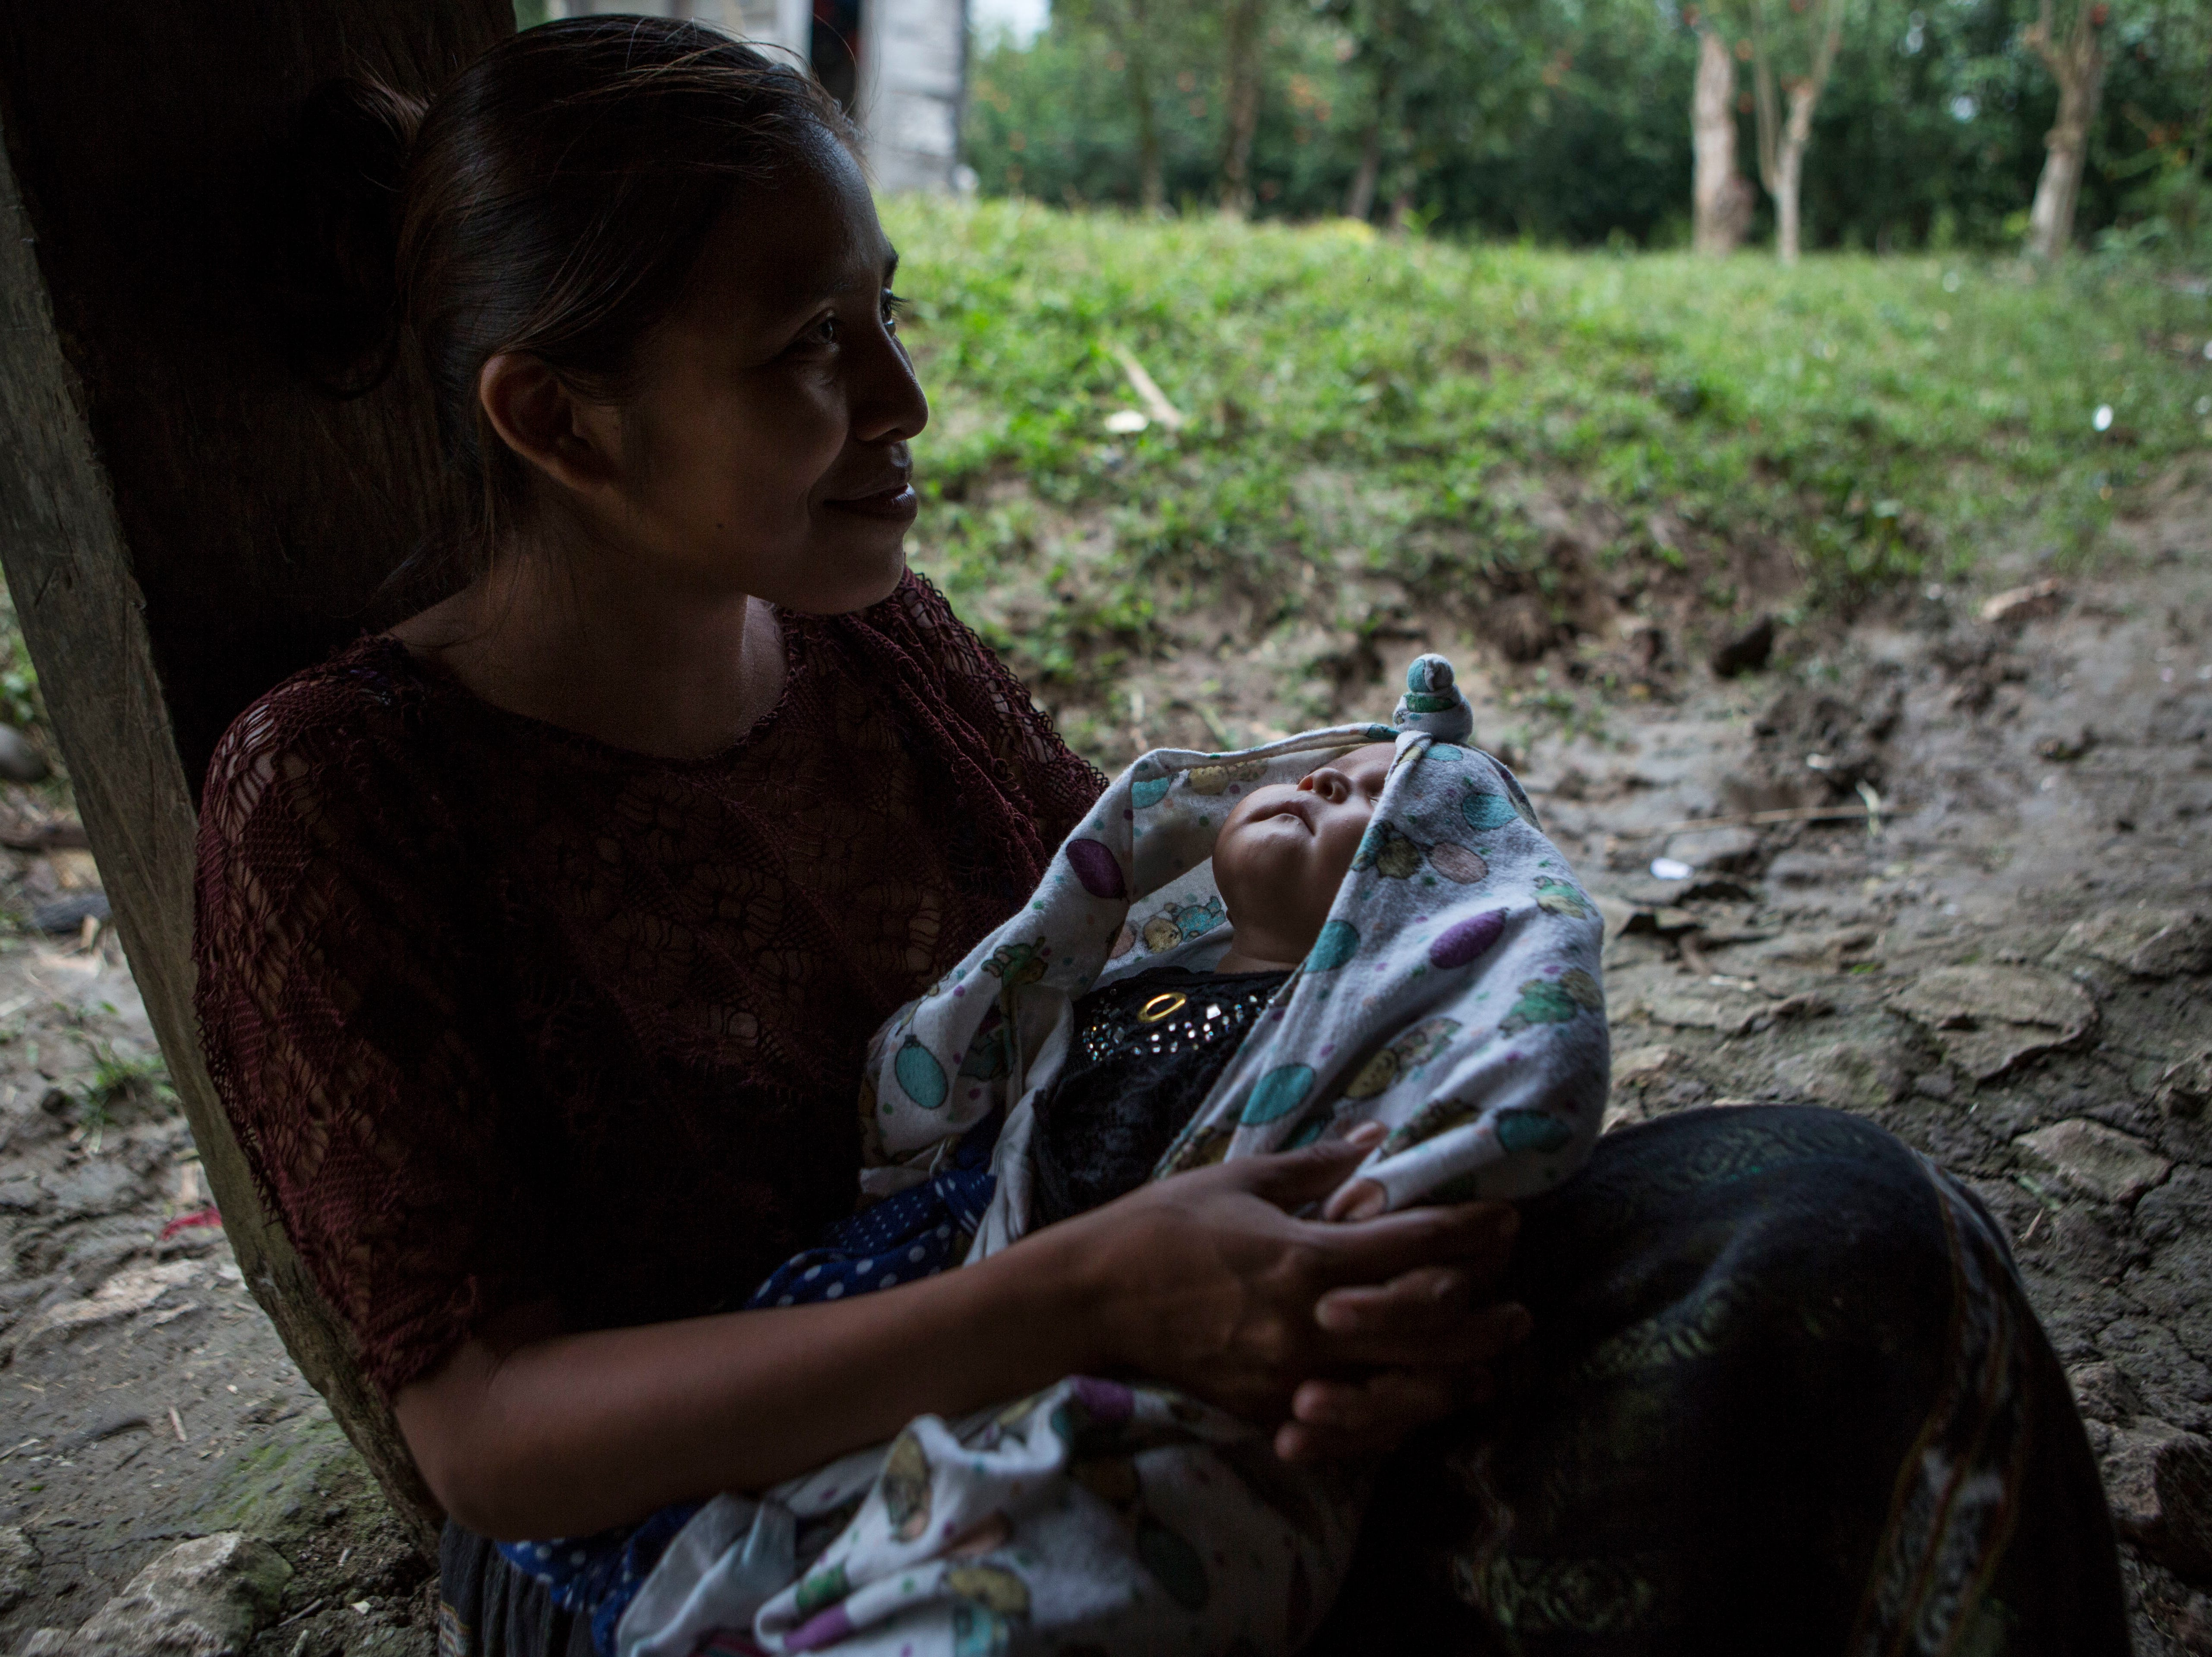 Carmen Esperanza Yatz, 21, holds her 3-month-old daughter Stefany Caal as they wait for the remains of Jakelin Caal Maquin in San Antonio Secortez, Guatemala, Sunday, Dec. 23, 2018. The body of Caal Maquin, 7, who died while in custody of the U.S. Border Patrol, arrived in her native Guatemala on Sunday and was driven hours into the countryside to be handed over to family members for a last goodbye.